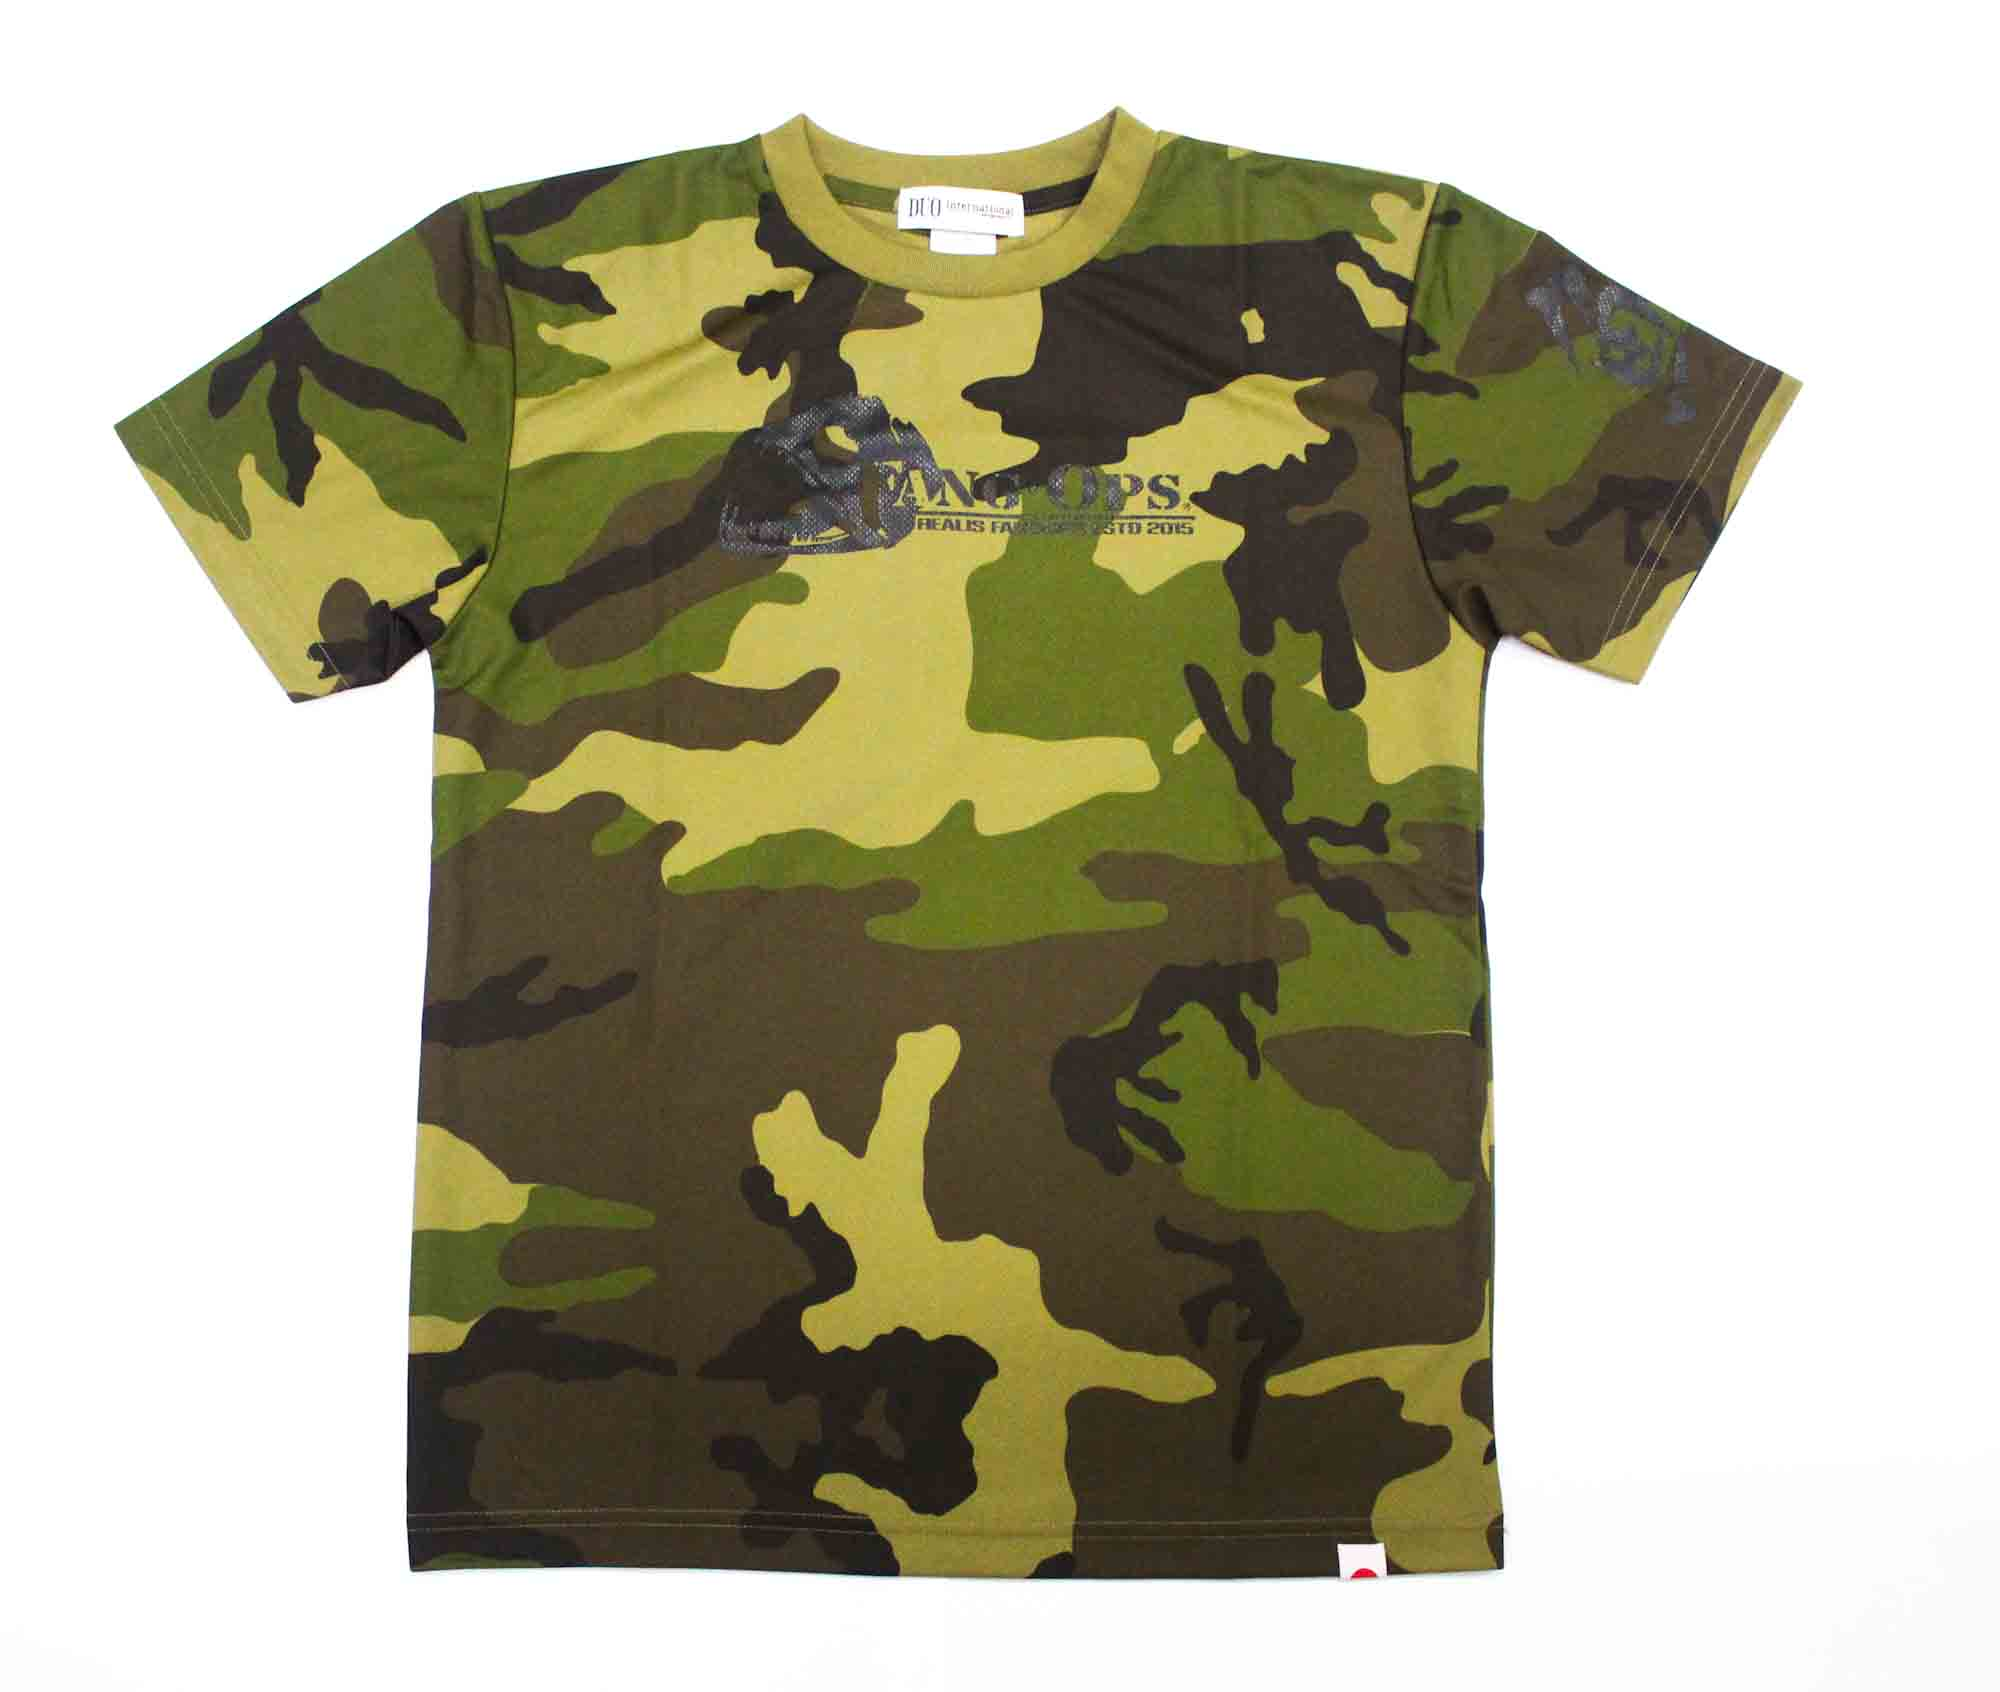 Duo T Shirt Fang Ops Beast Short Sleeve Dry Fit Army Green Size S (1454)